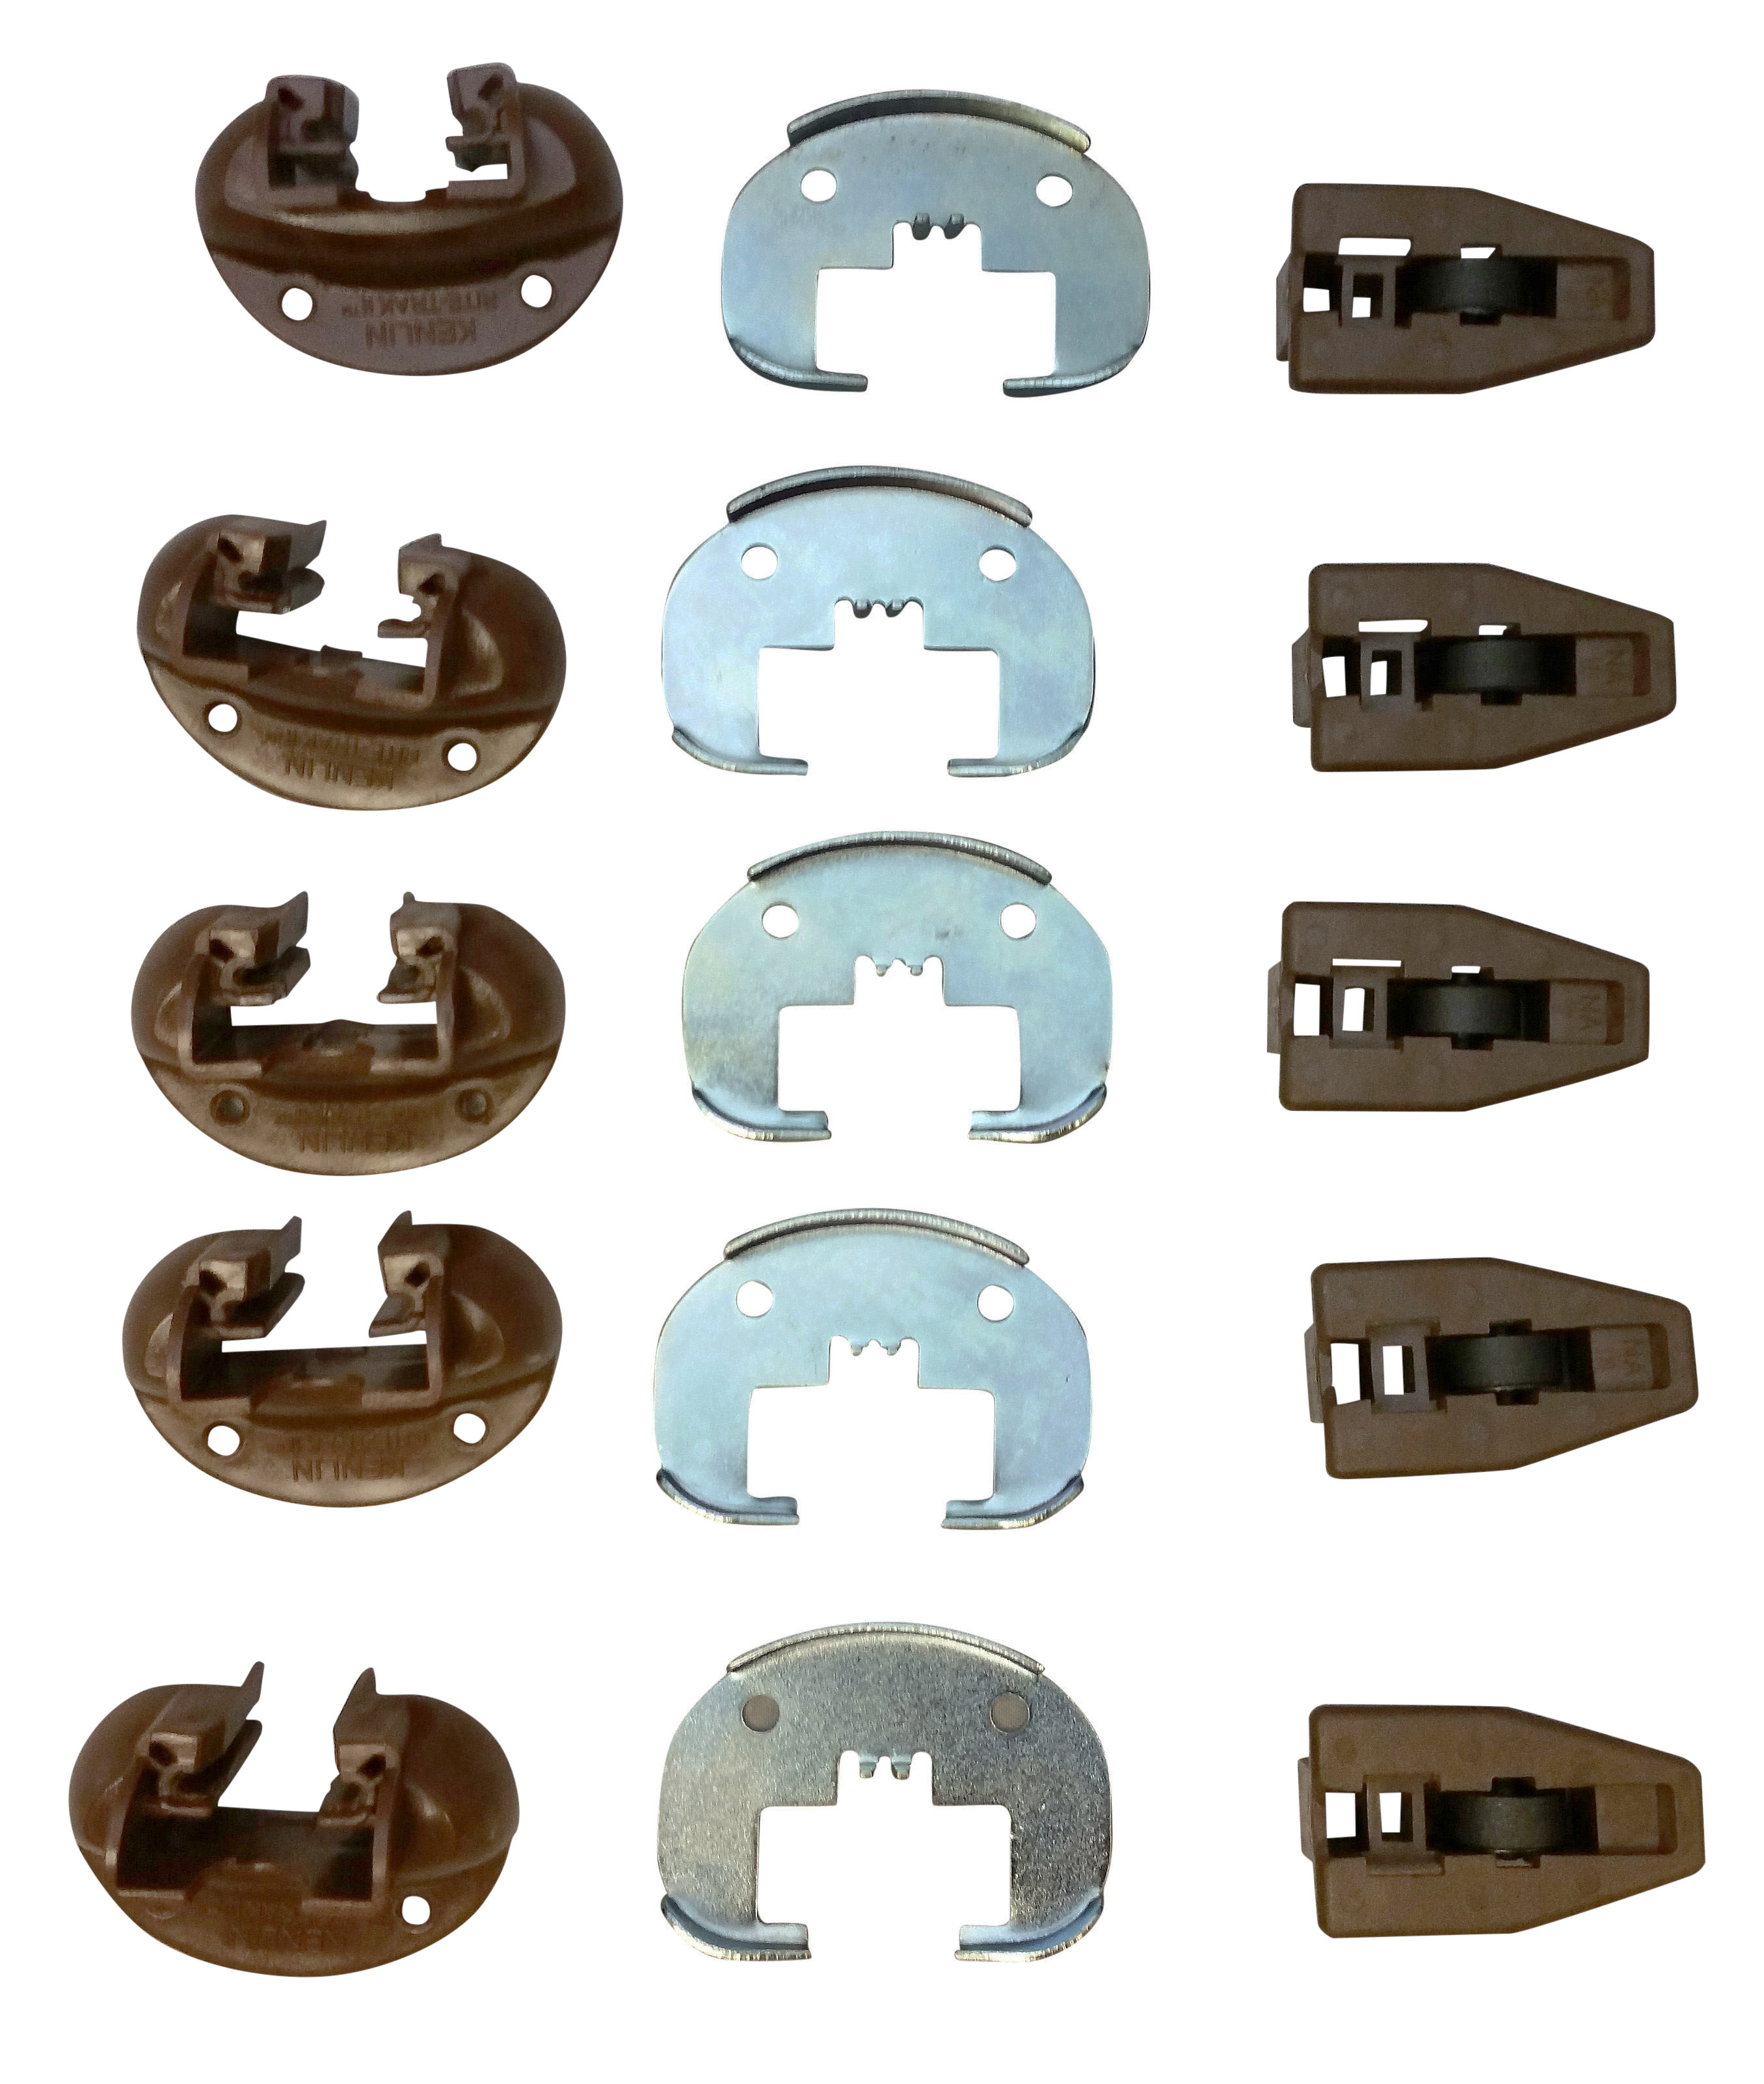 5 Sets Kenlin Rite Trak I Replacement Drawer Guides with Metal Backing Plates